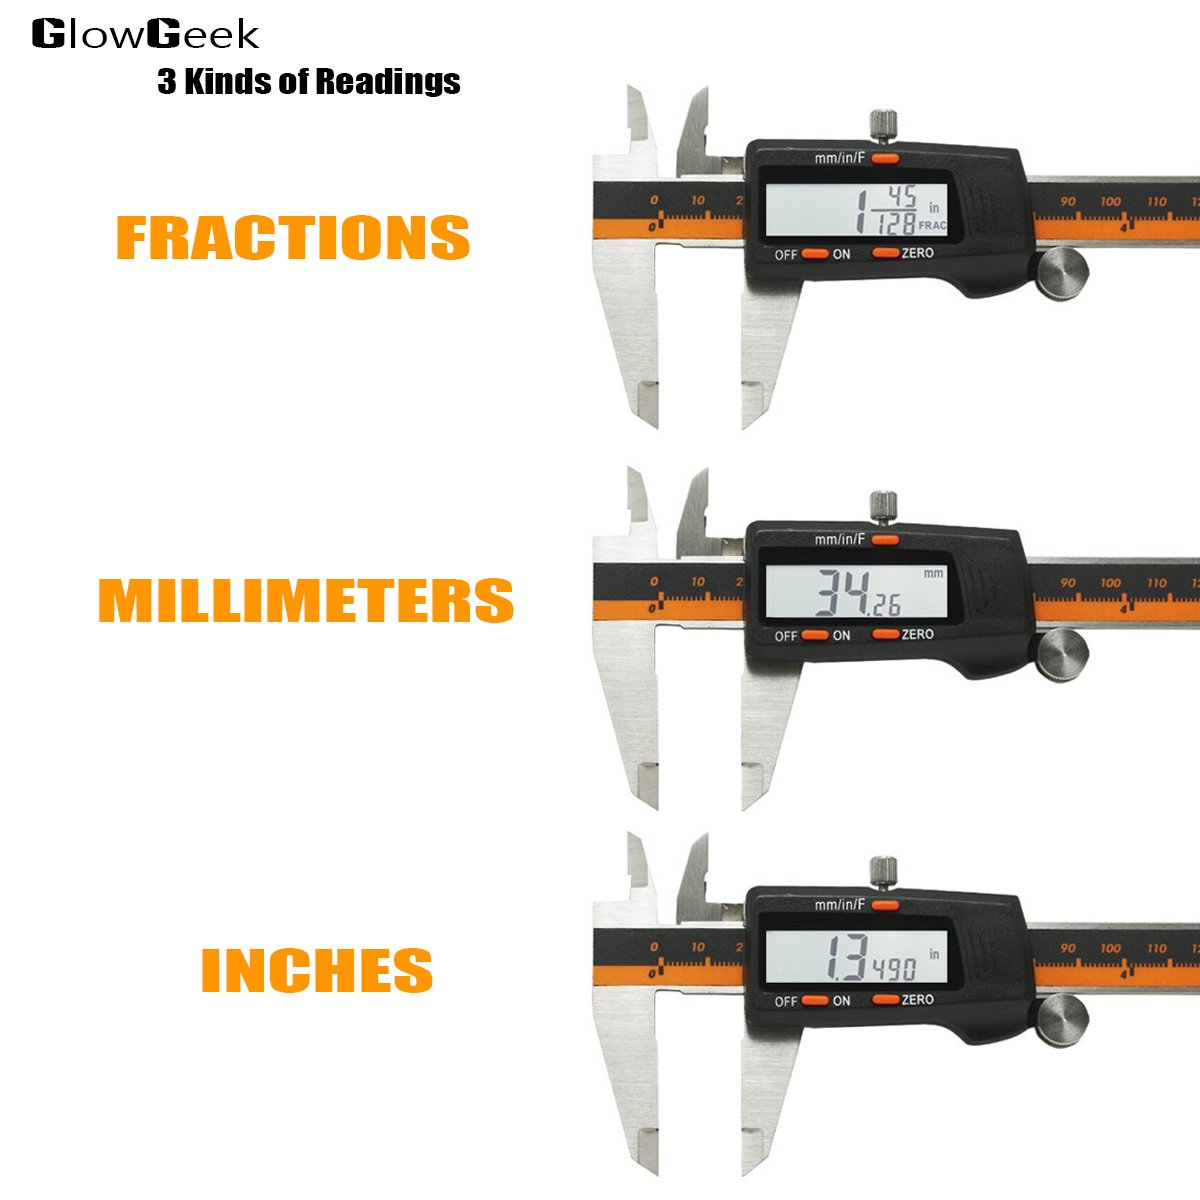 GlowGeek Electronic Digital Caliper Inch/Metric/Fractions Conversion 0-6 Inch/150 mm Stainless Steel Body Orange/Black Extra Large LCD Screen Auto Off Featured Measuring Tool by GlowGeek (Image #2)